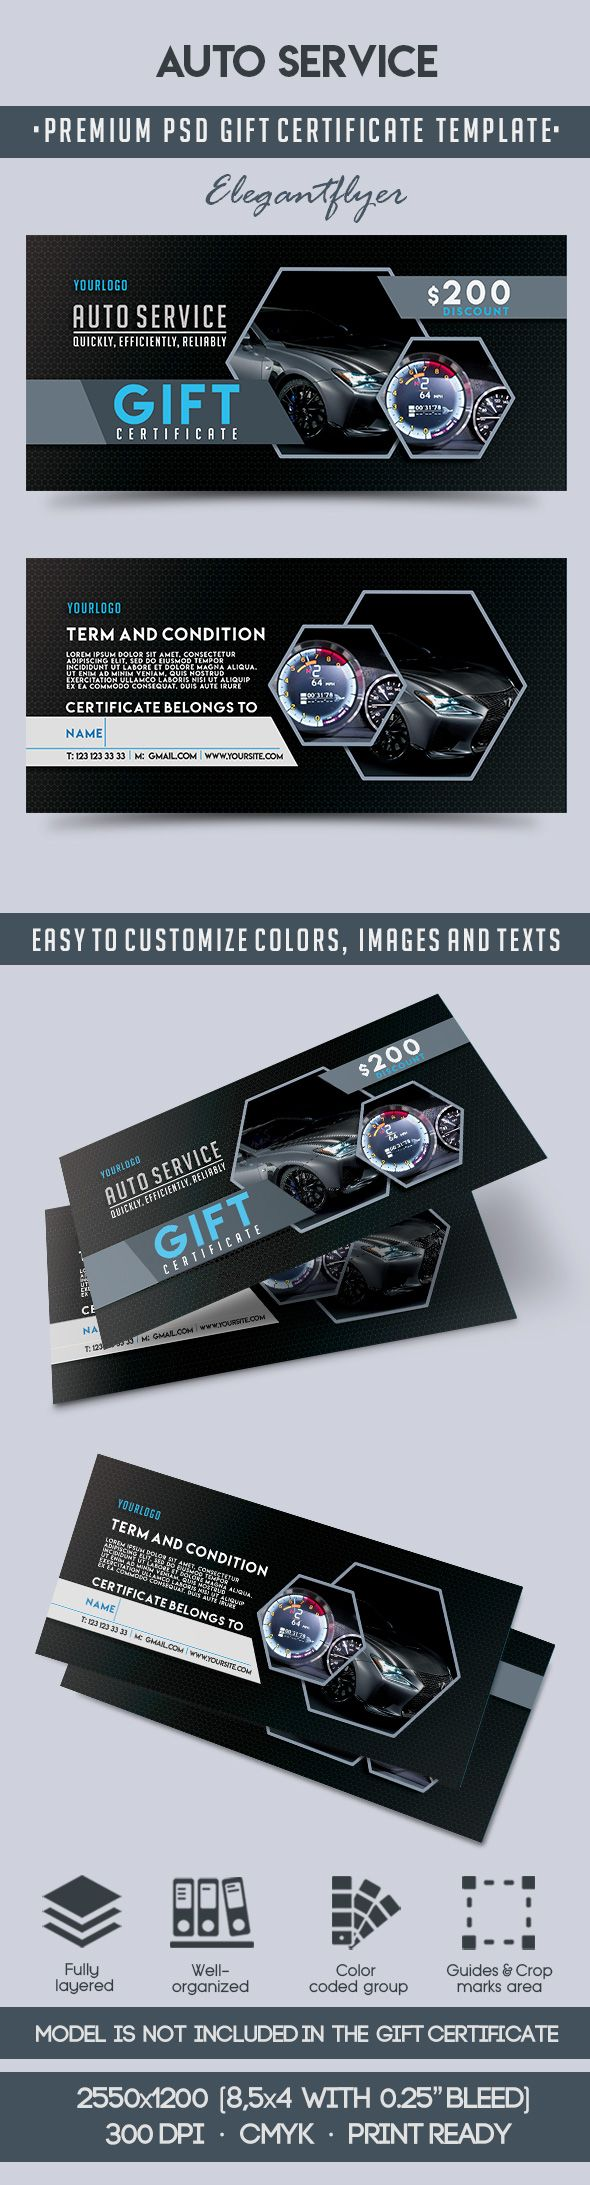 Auto service premium gift certificate psd template by for Automotive gift certificate template